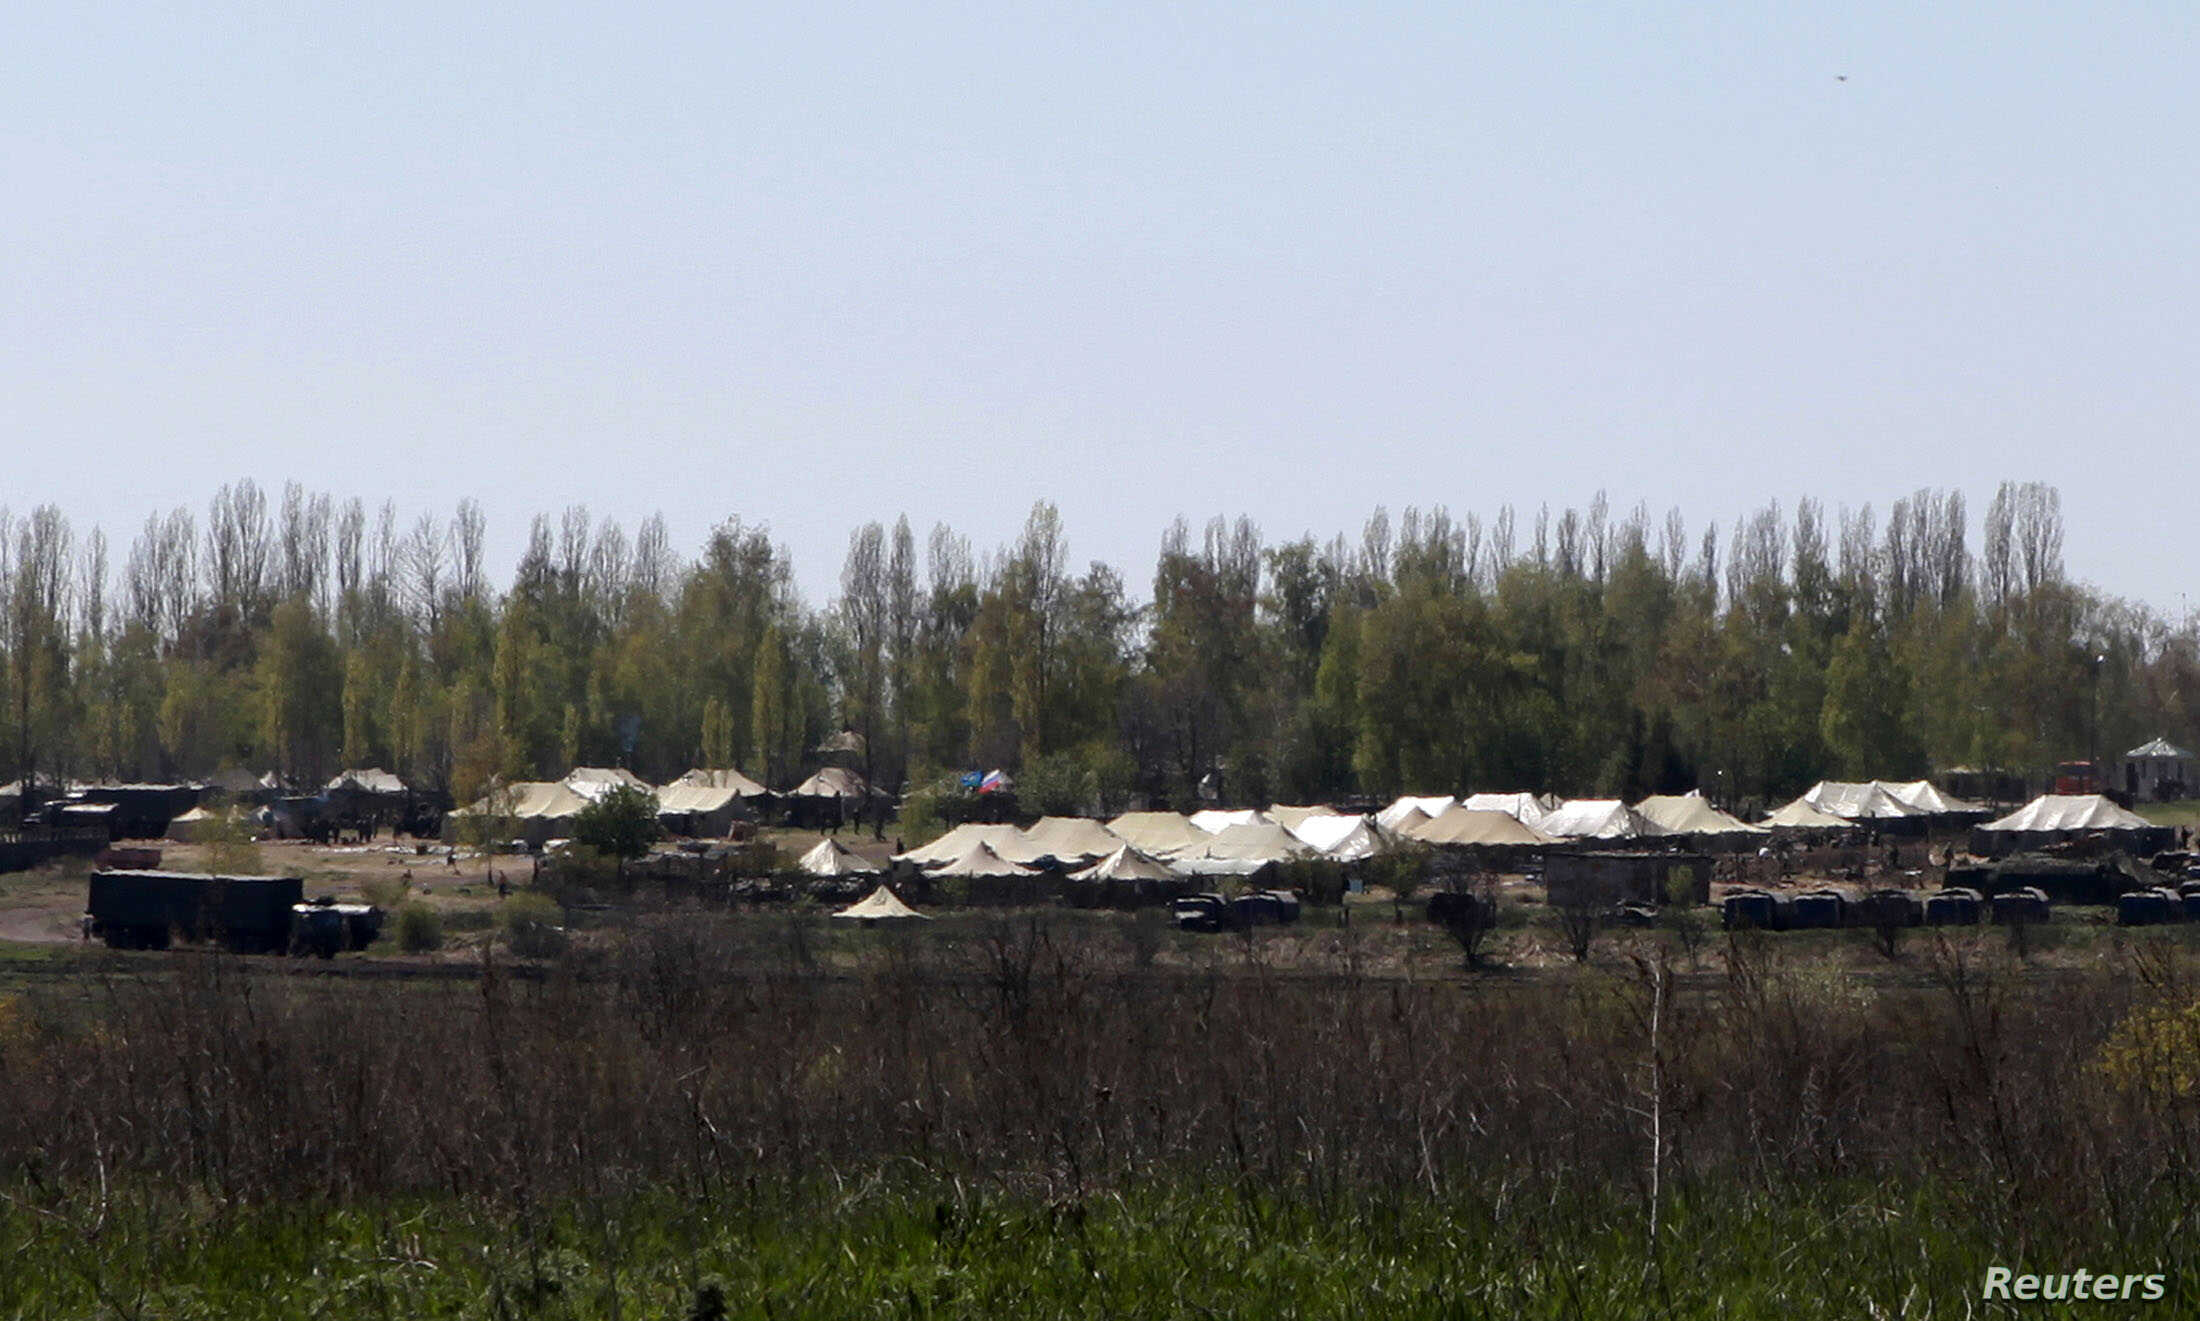 Russian military vehicles and army tents are seen in a field outside the village of Severny in Belgorod region near the Russian-Ukrainian border, April 25, 2014.